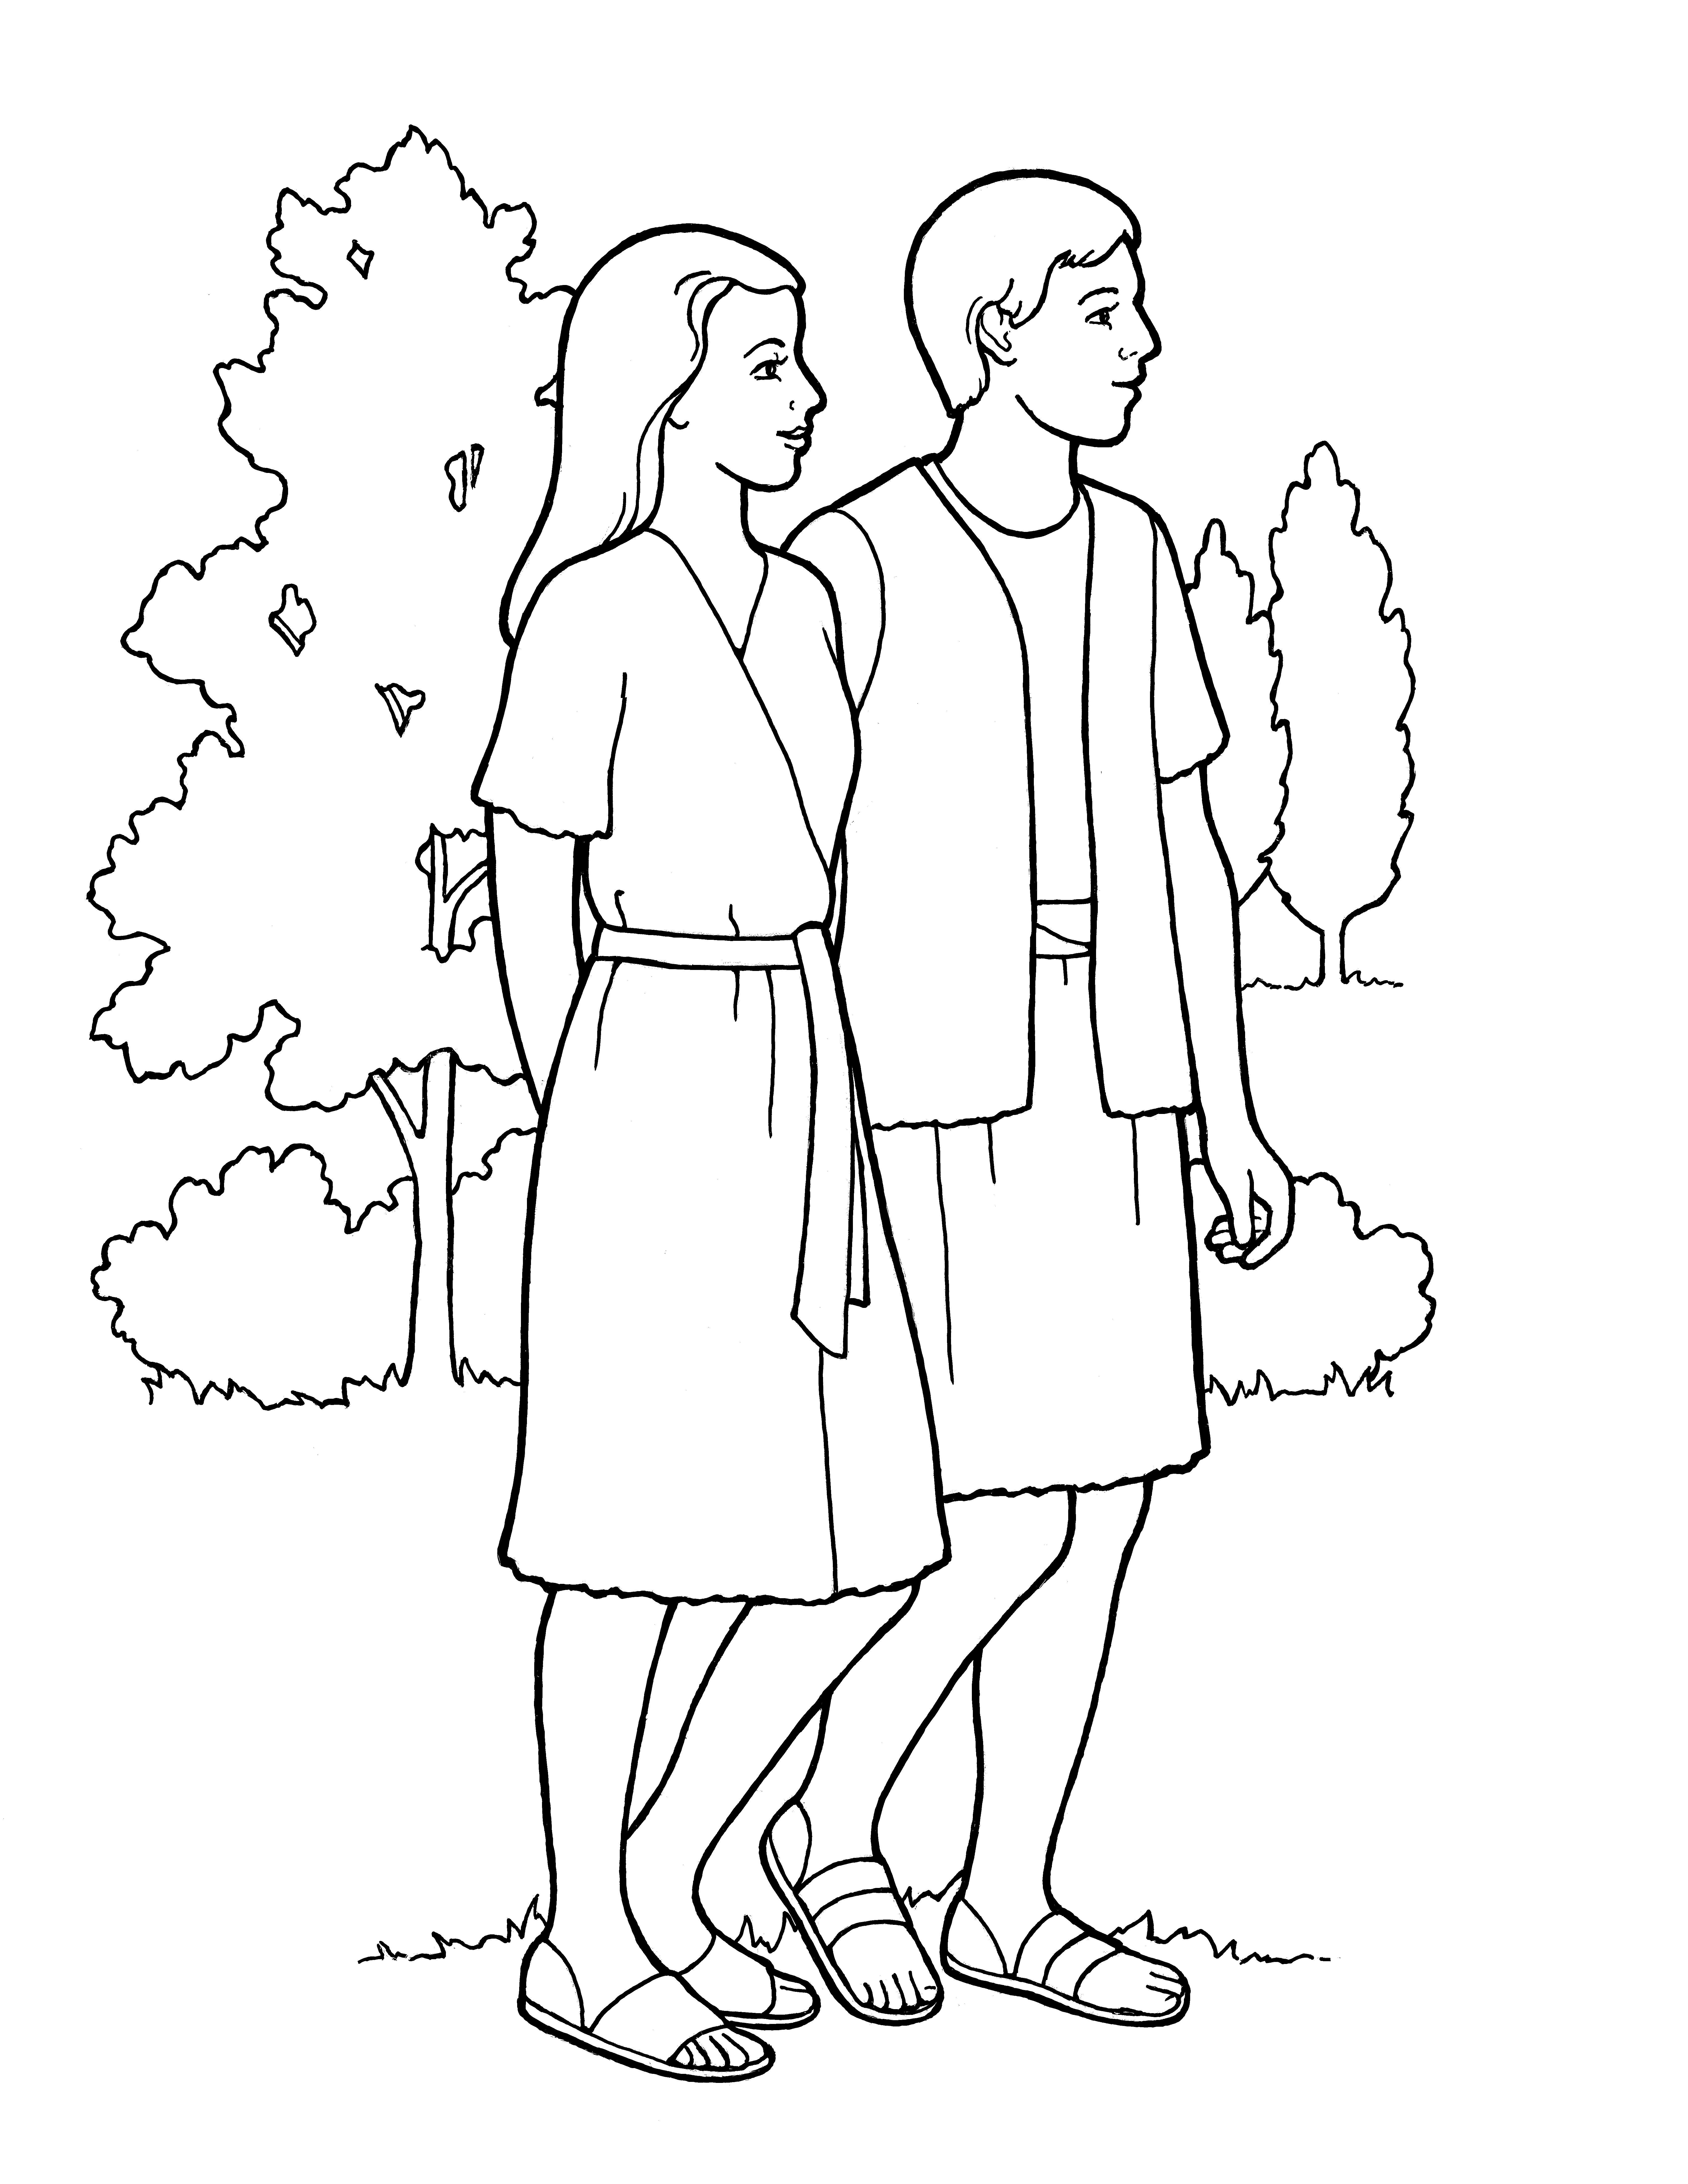 """An illustration of the second article of faith—""""Agency"""" (Adam and Eve in the Garden of Eden)."""